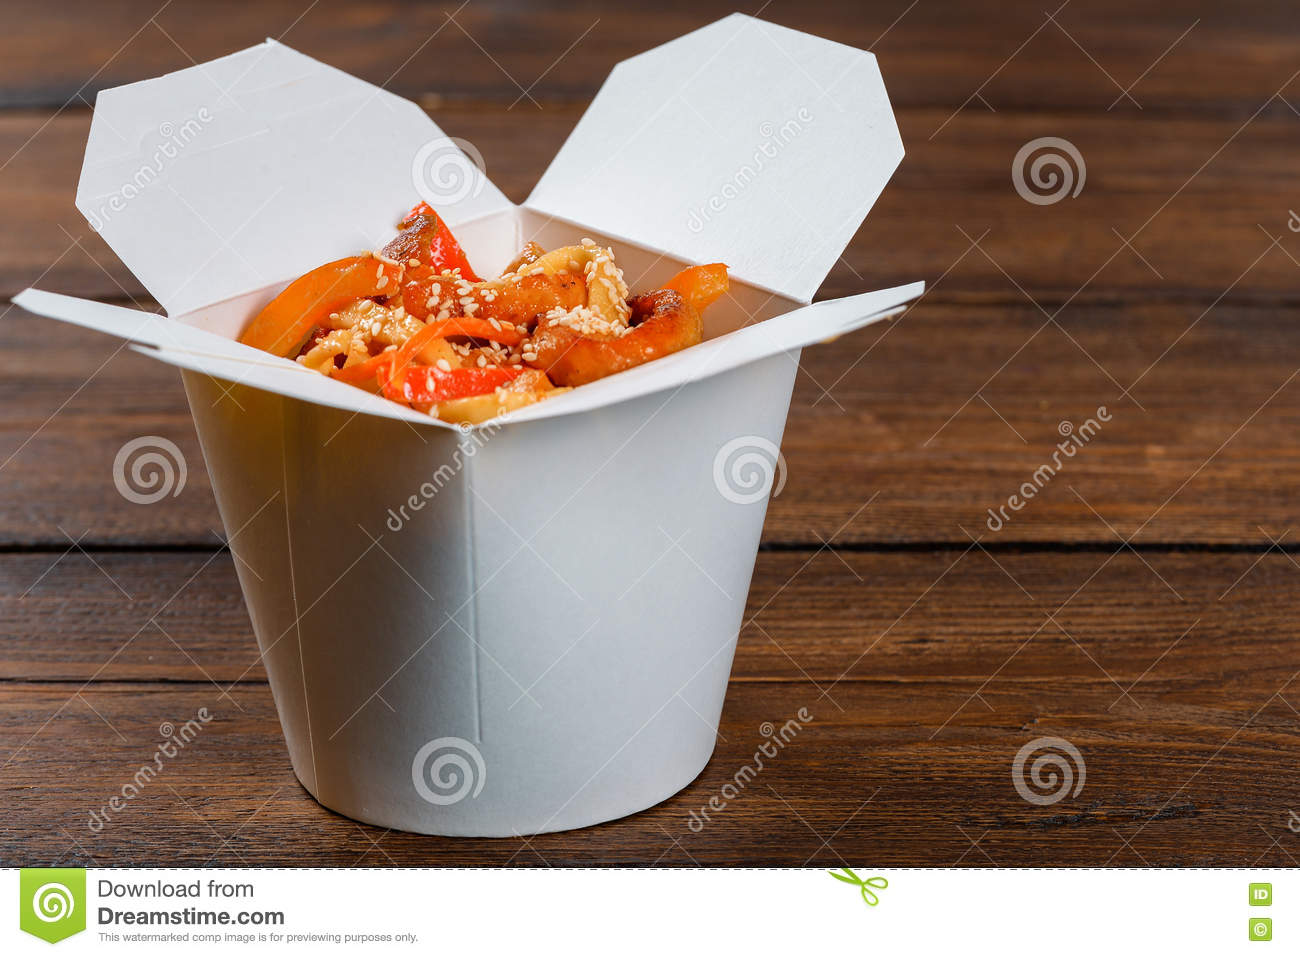 Noodles in a white box on wooden background